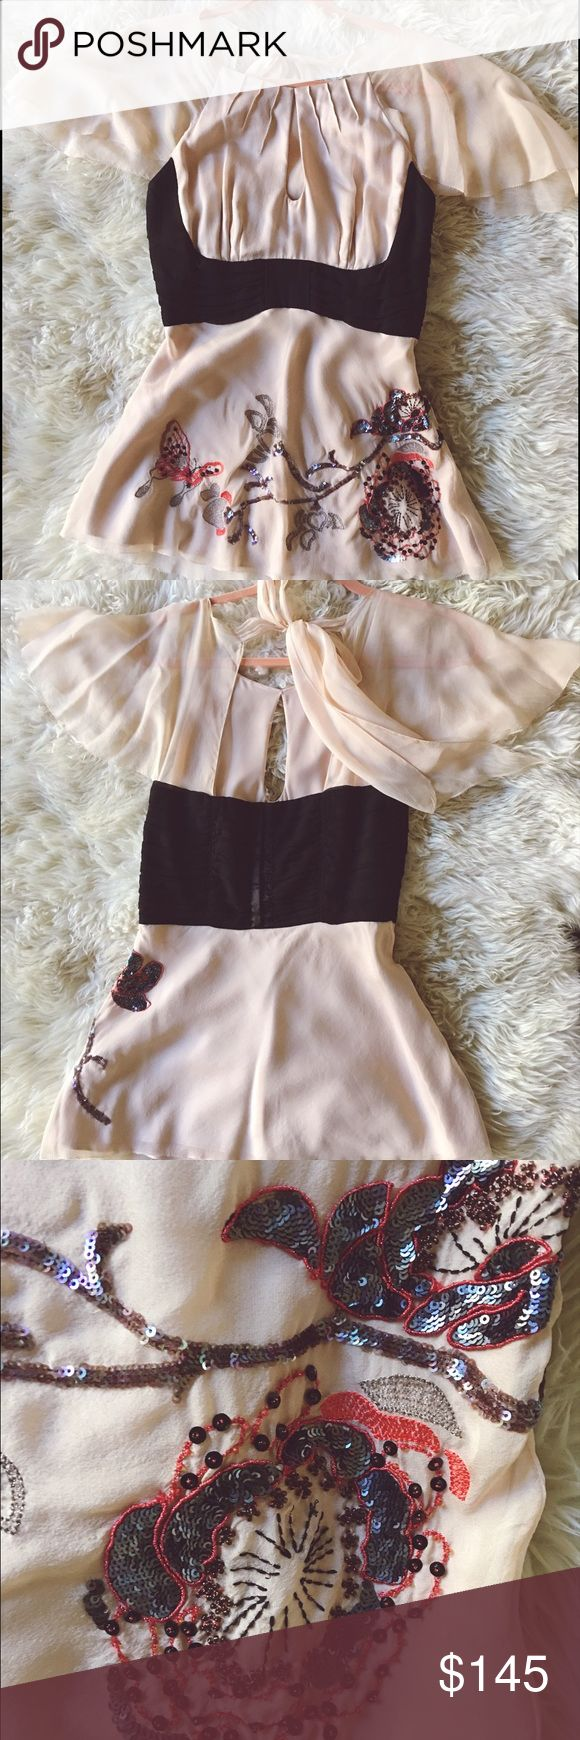 Karen Millen embroidered silk top with corset This 100% silk authentic Karen MILLER top in soft peach color will make you a queen of every party. Match with black skirt, or silk black pants and you have an official outfit to look adorable, classy, fresh and romantic ! ❤️ been worn once! Karen Millen Tops Blouses